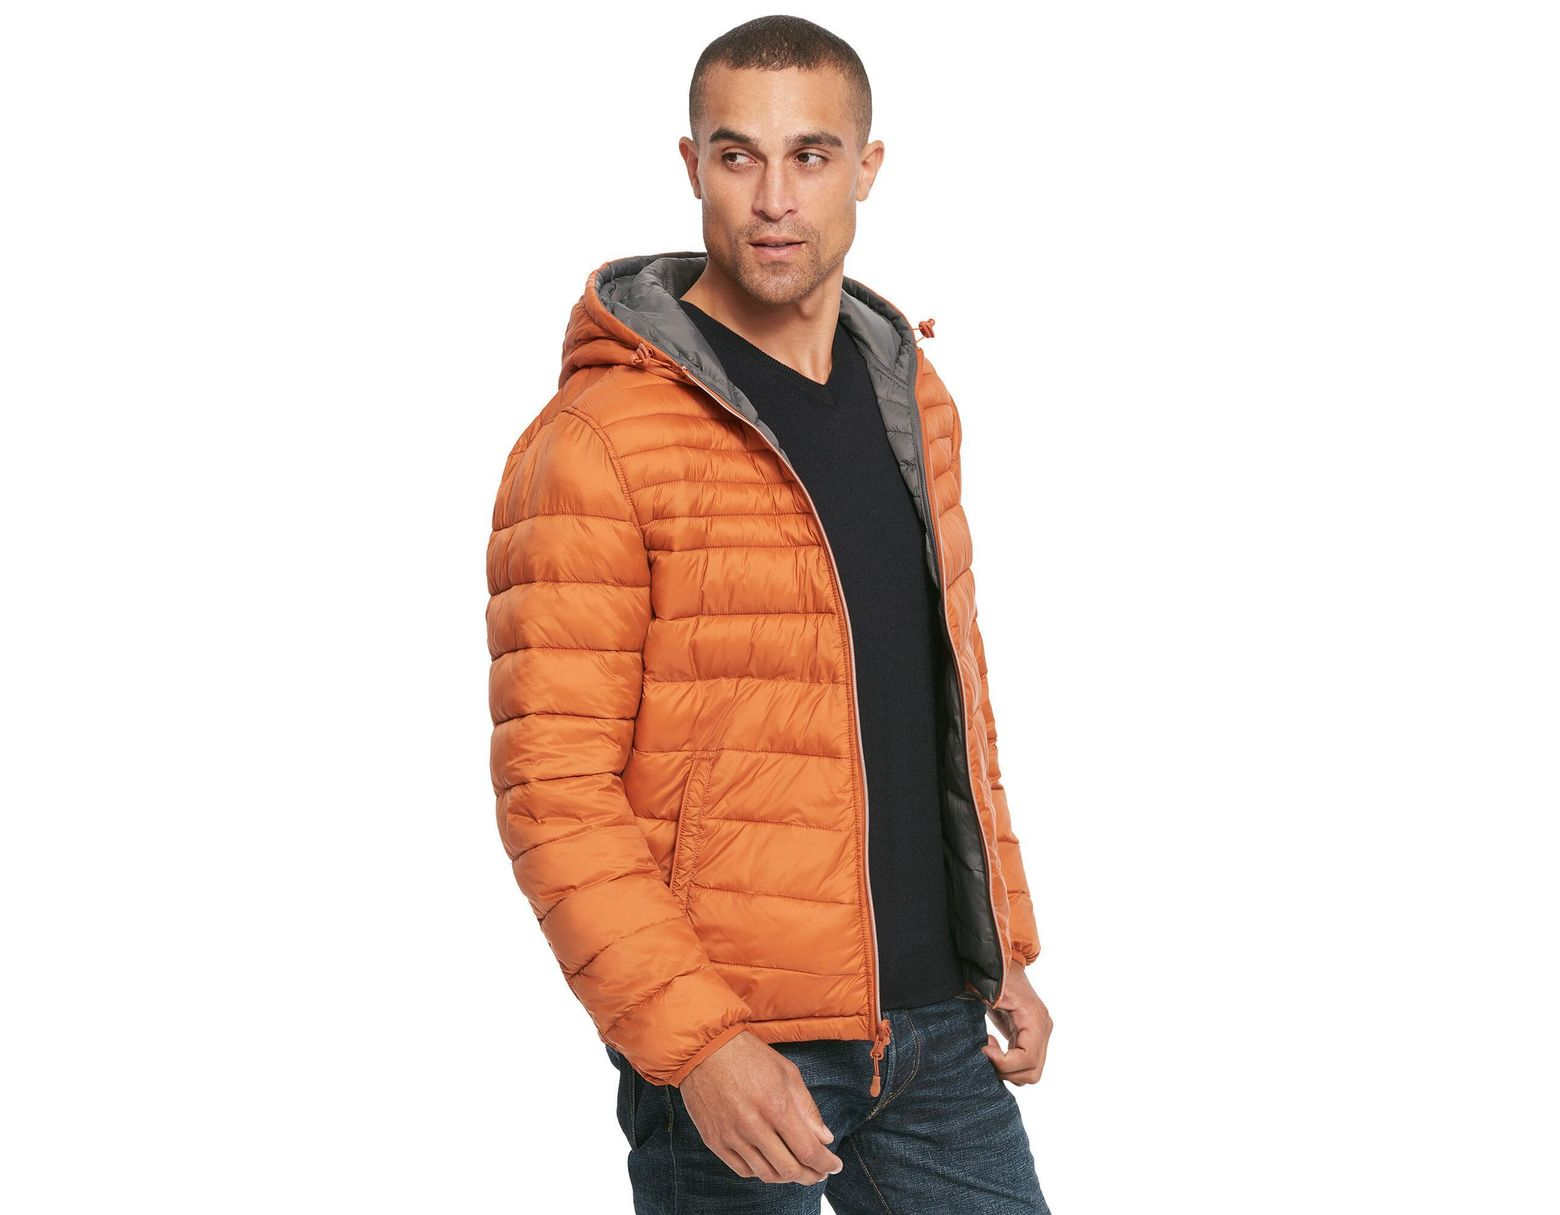 0c15078dda4 Lyst - Wilsons Leather Designer Brand Hooded Reversible Quilted Puffer  Jacket in Orange for Men - Save 20%